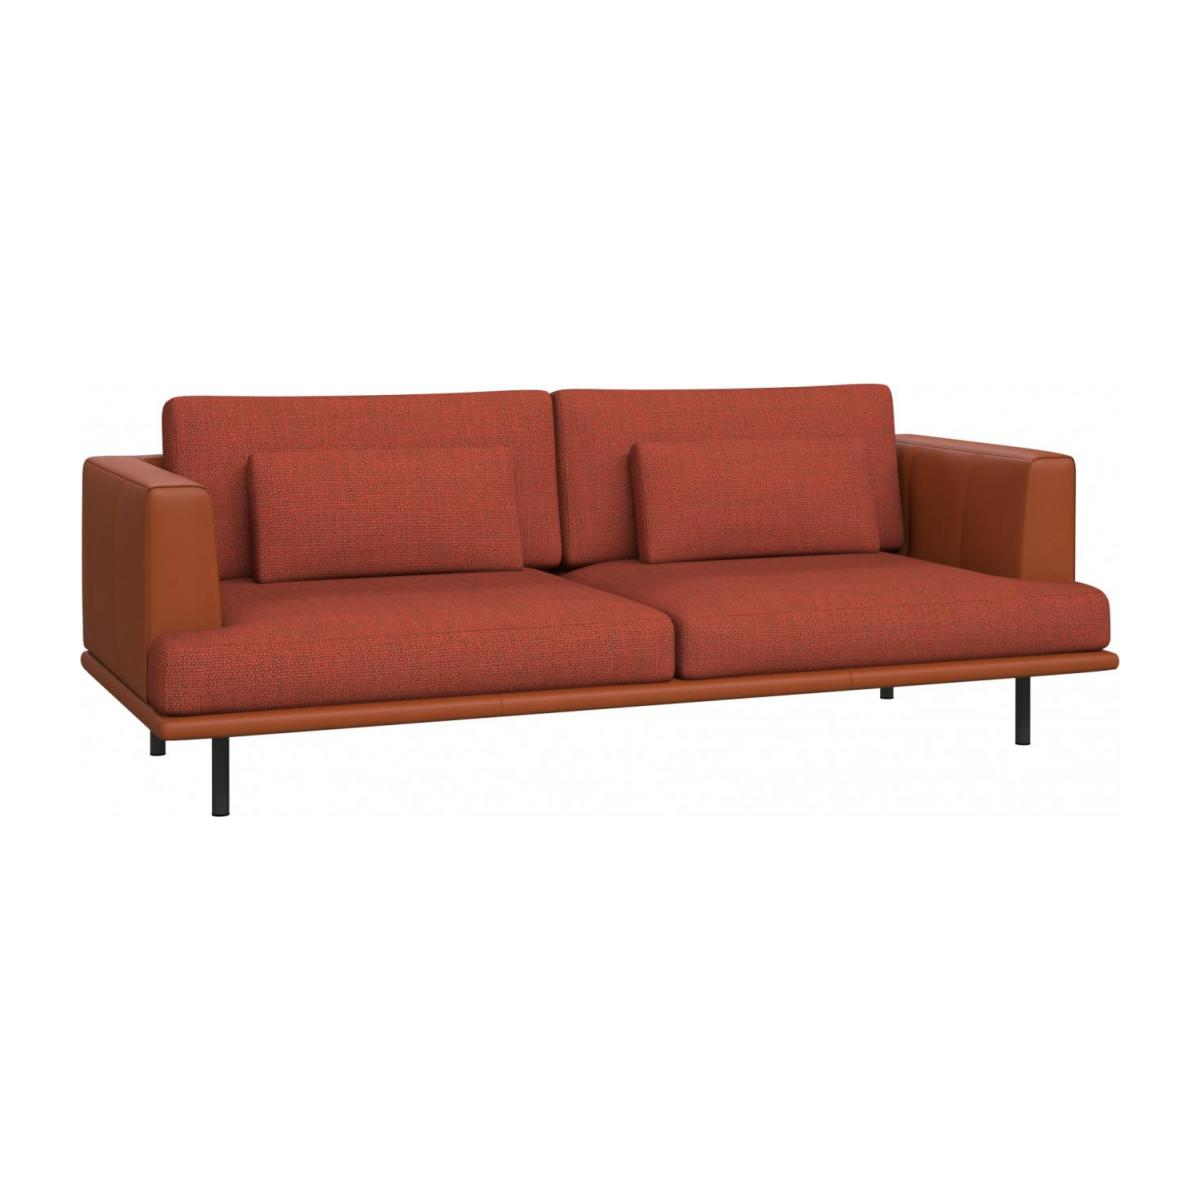 3 seater sofa in Fasoli fabric, warm red rock with base and armrests in brown leather n°1